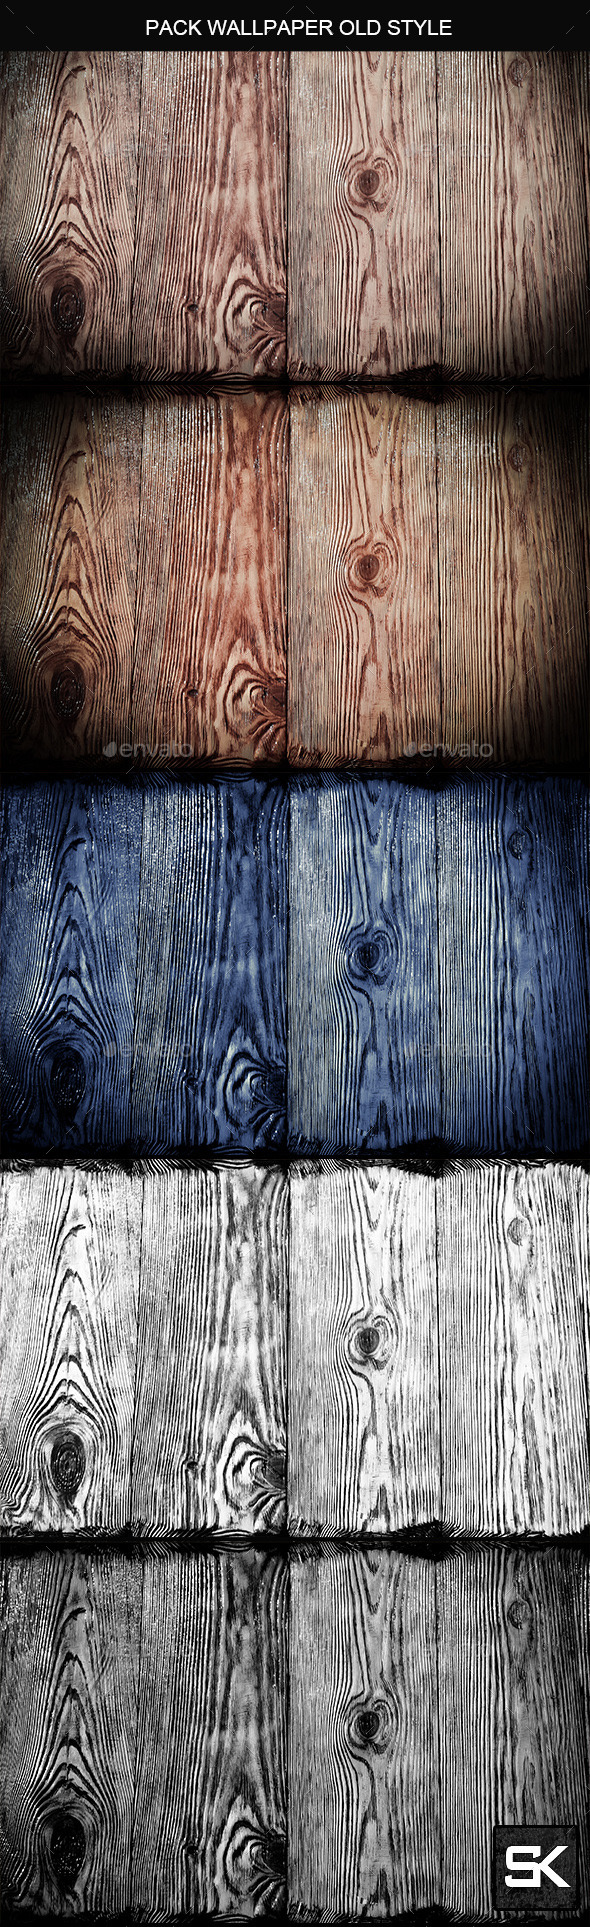 GraphicRiver Wood Backgrounds 2 10289164